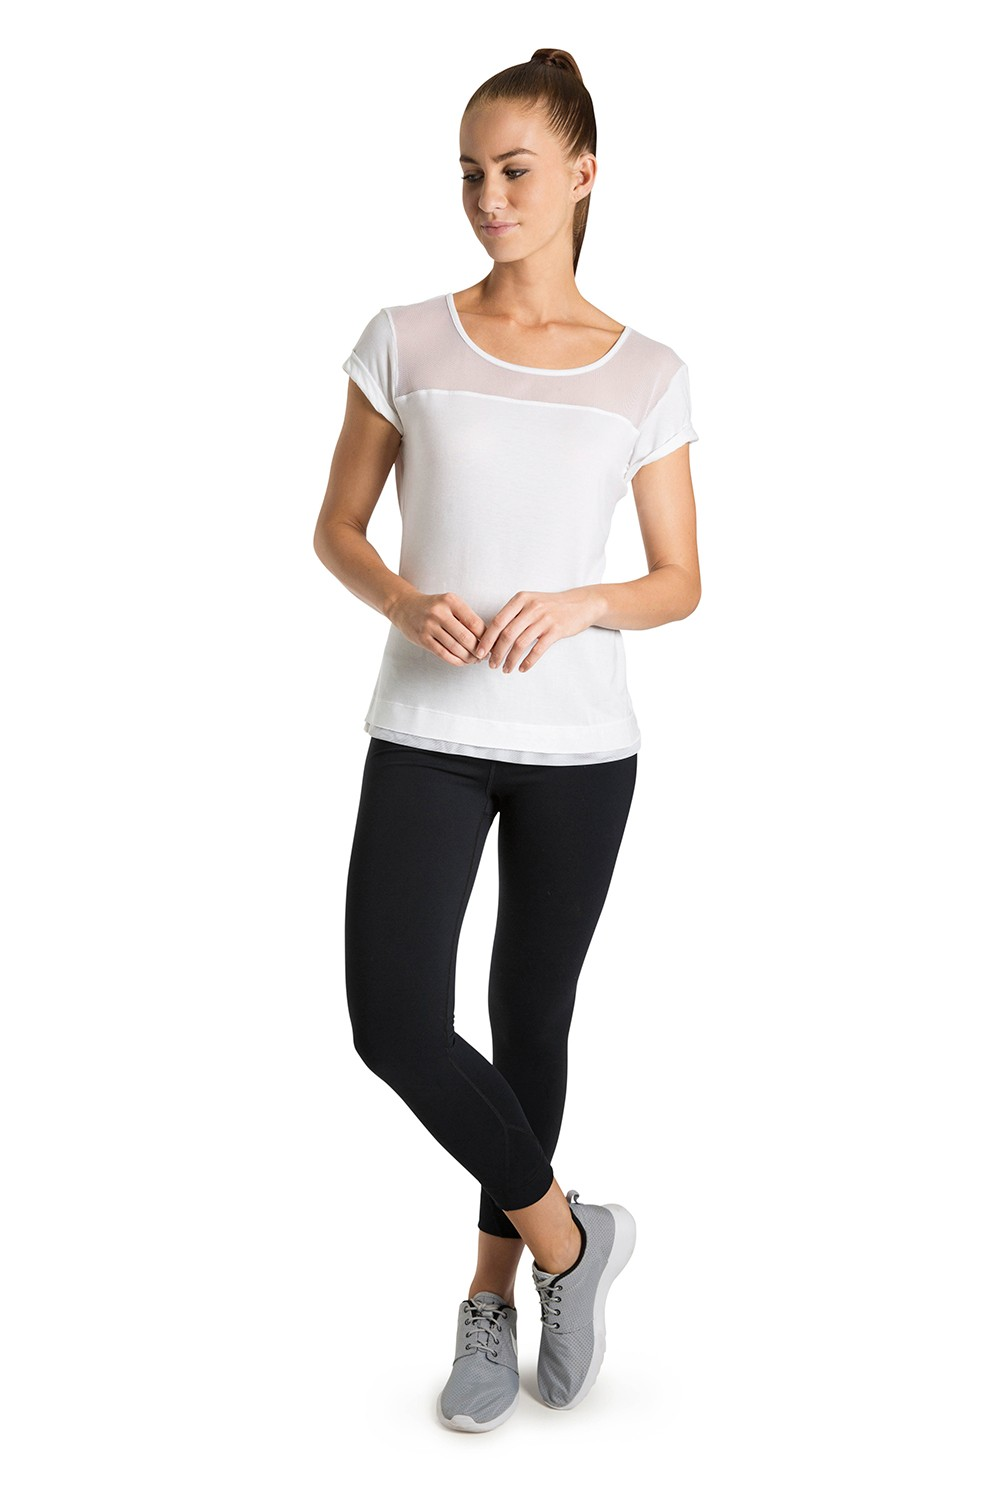 Roll Up Sleeve Tee Women's Tops